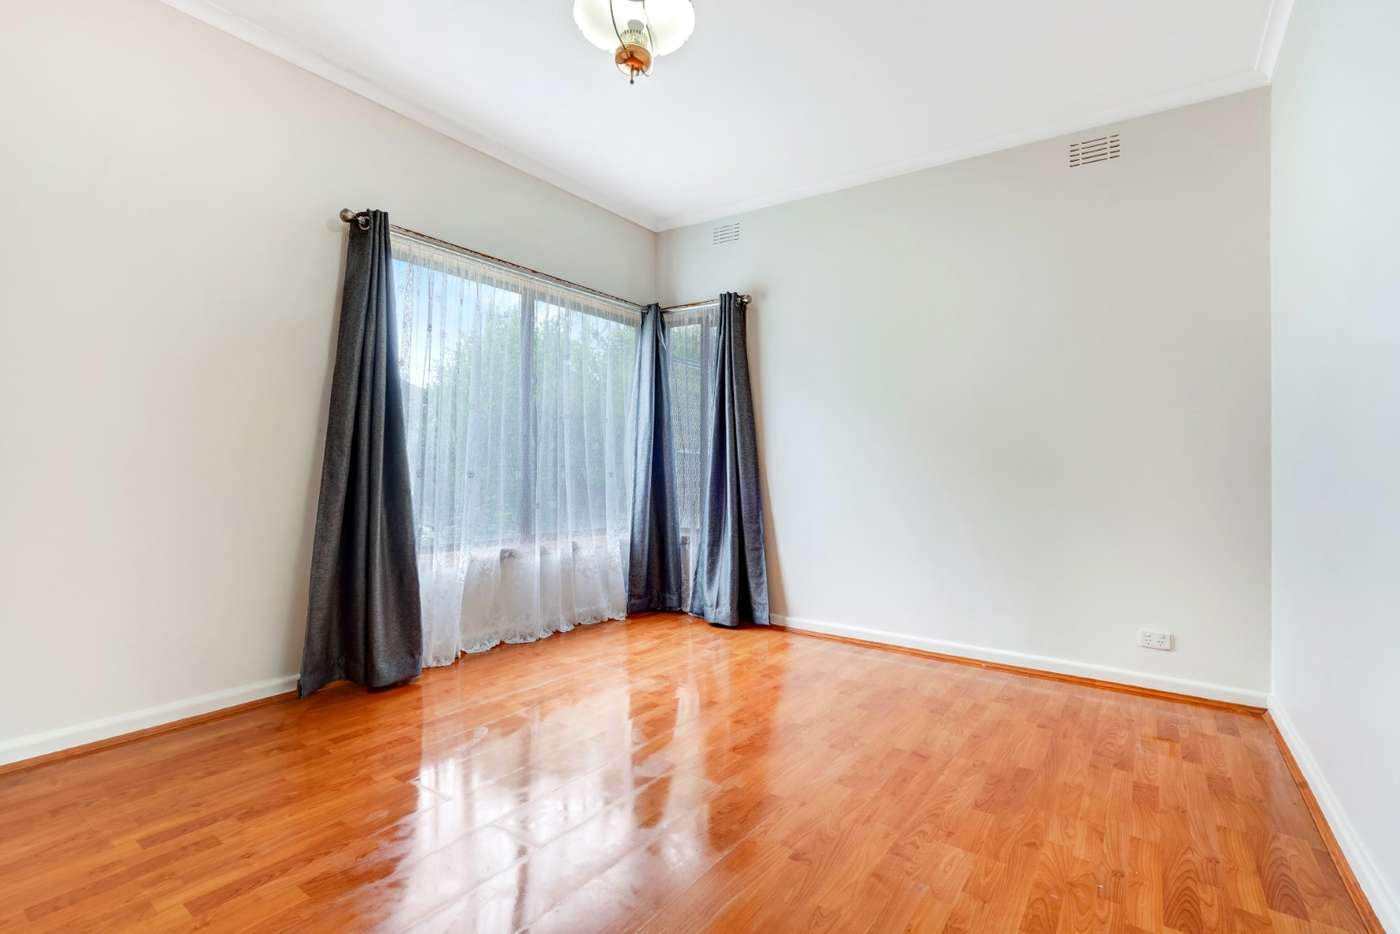 Sixth view of Homely house listing, 26 Holmes Street, Noble Park VIC 3174